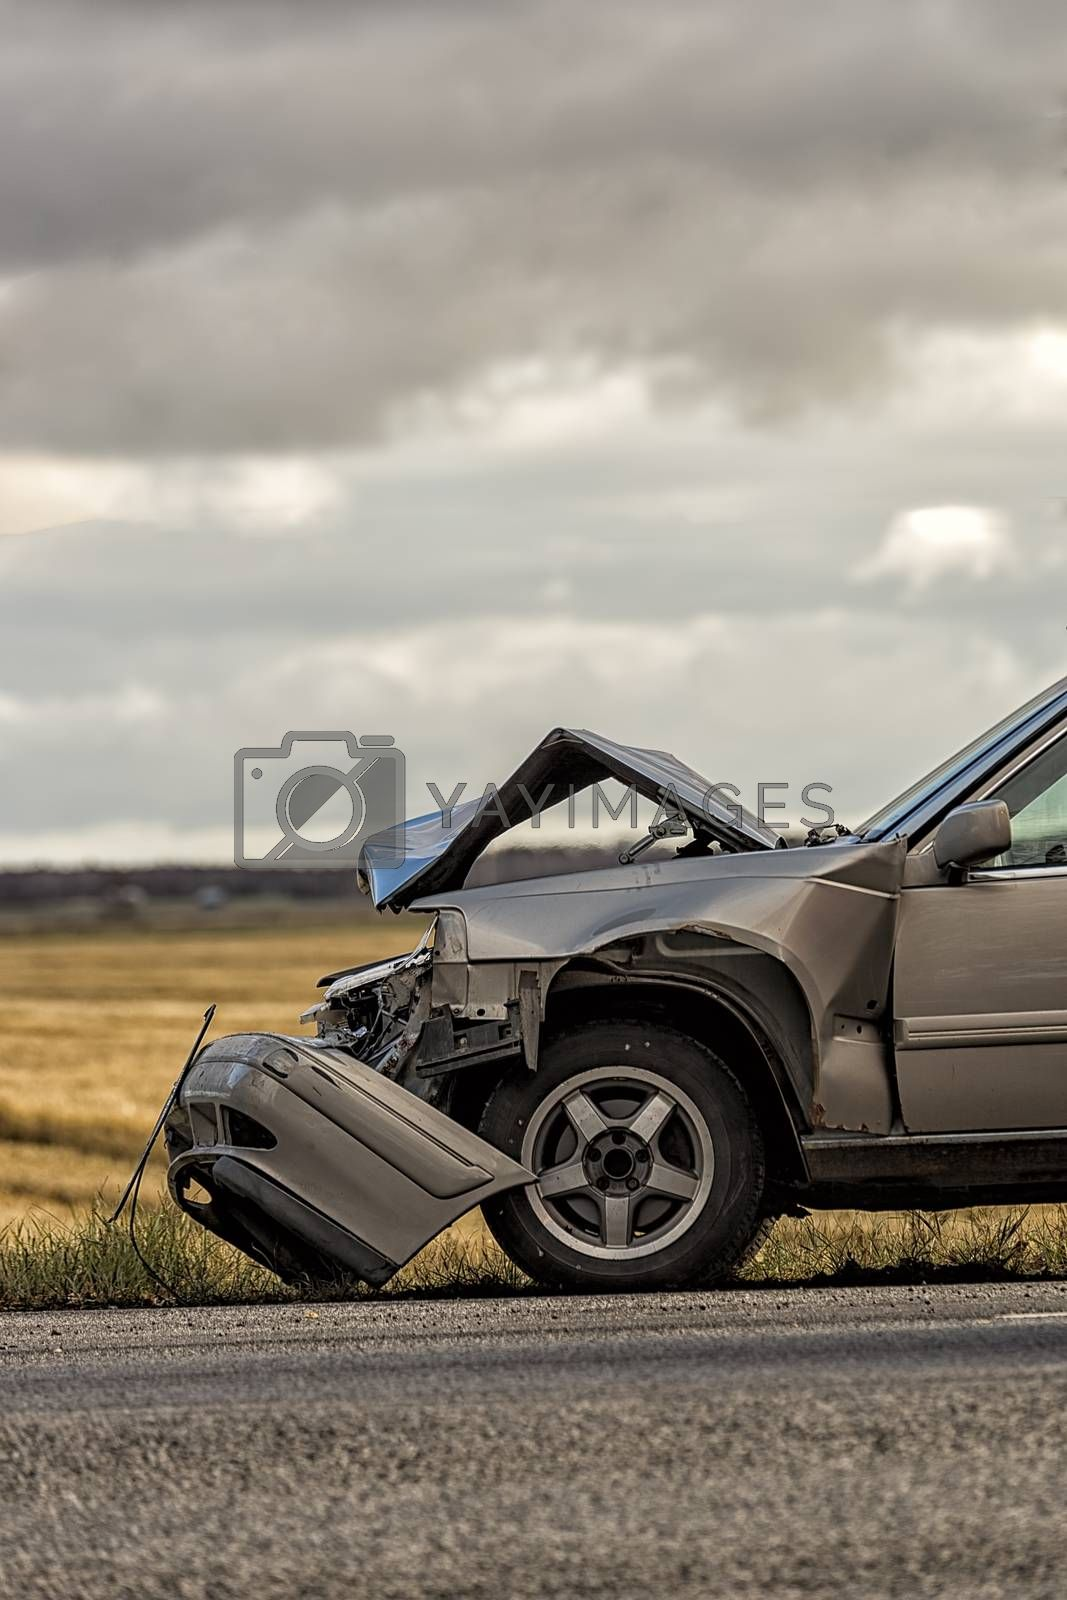 Car Crashed after Accident with a field and cloudy sky.